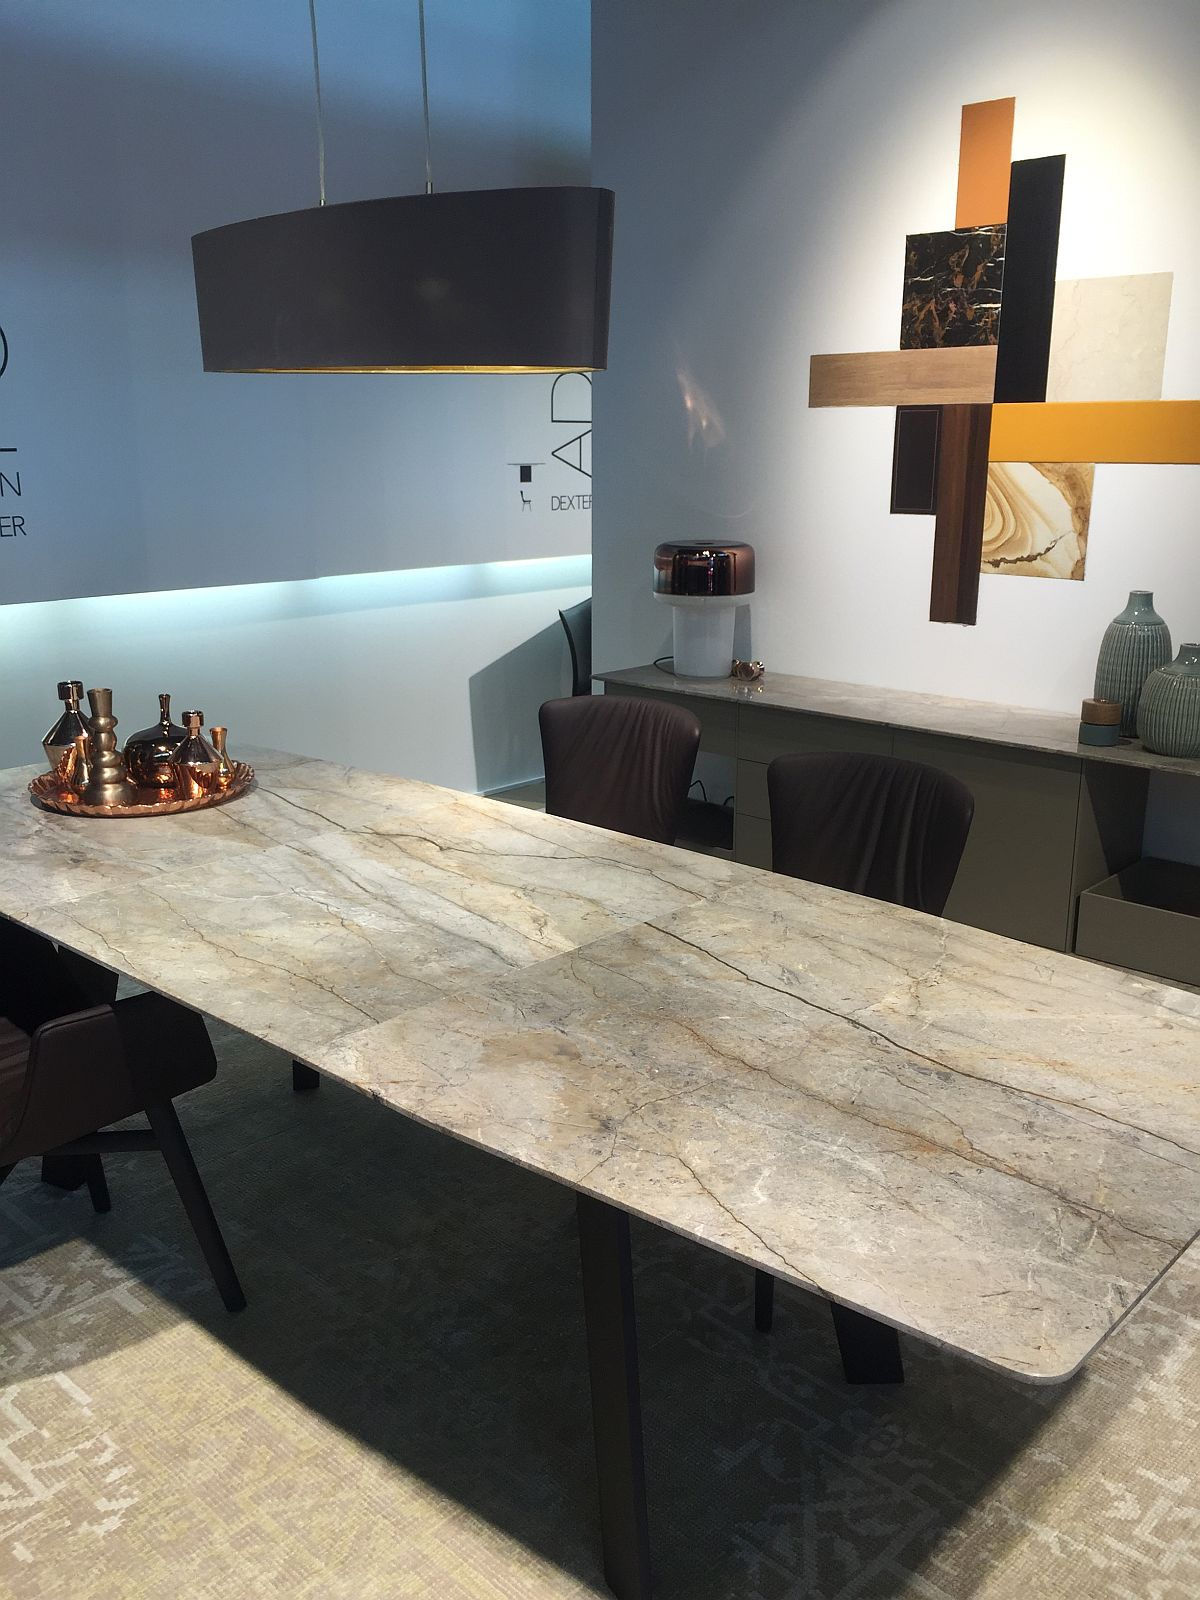 Exclusive dining room tables from DRAENERT at Salone del Mobile 2016